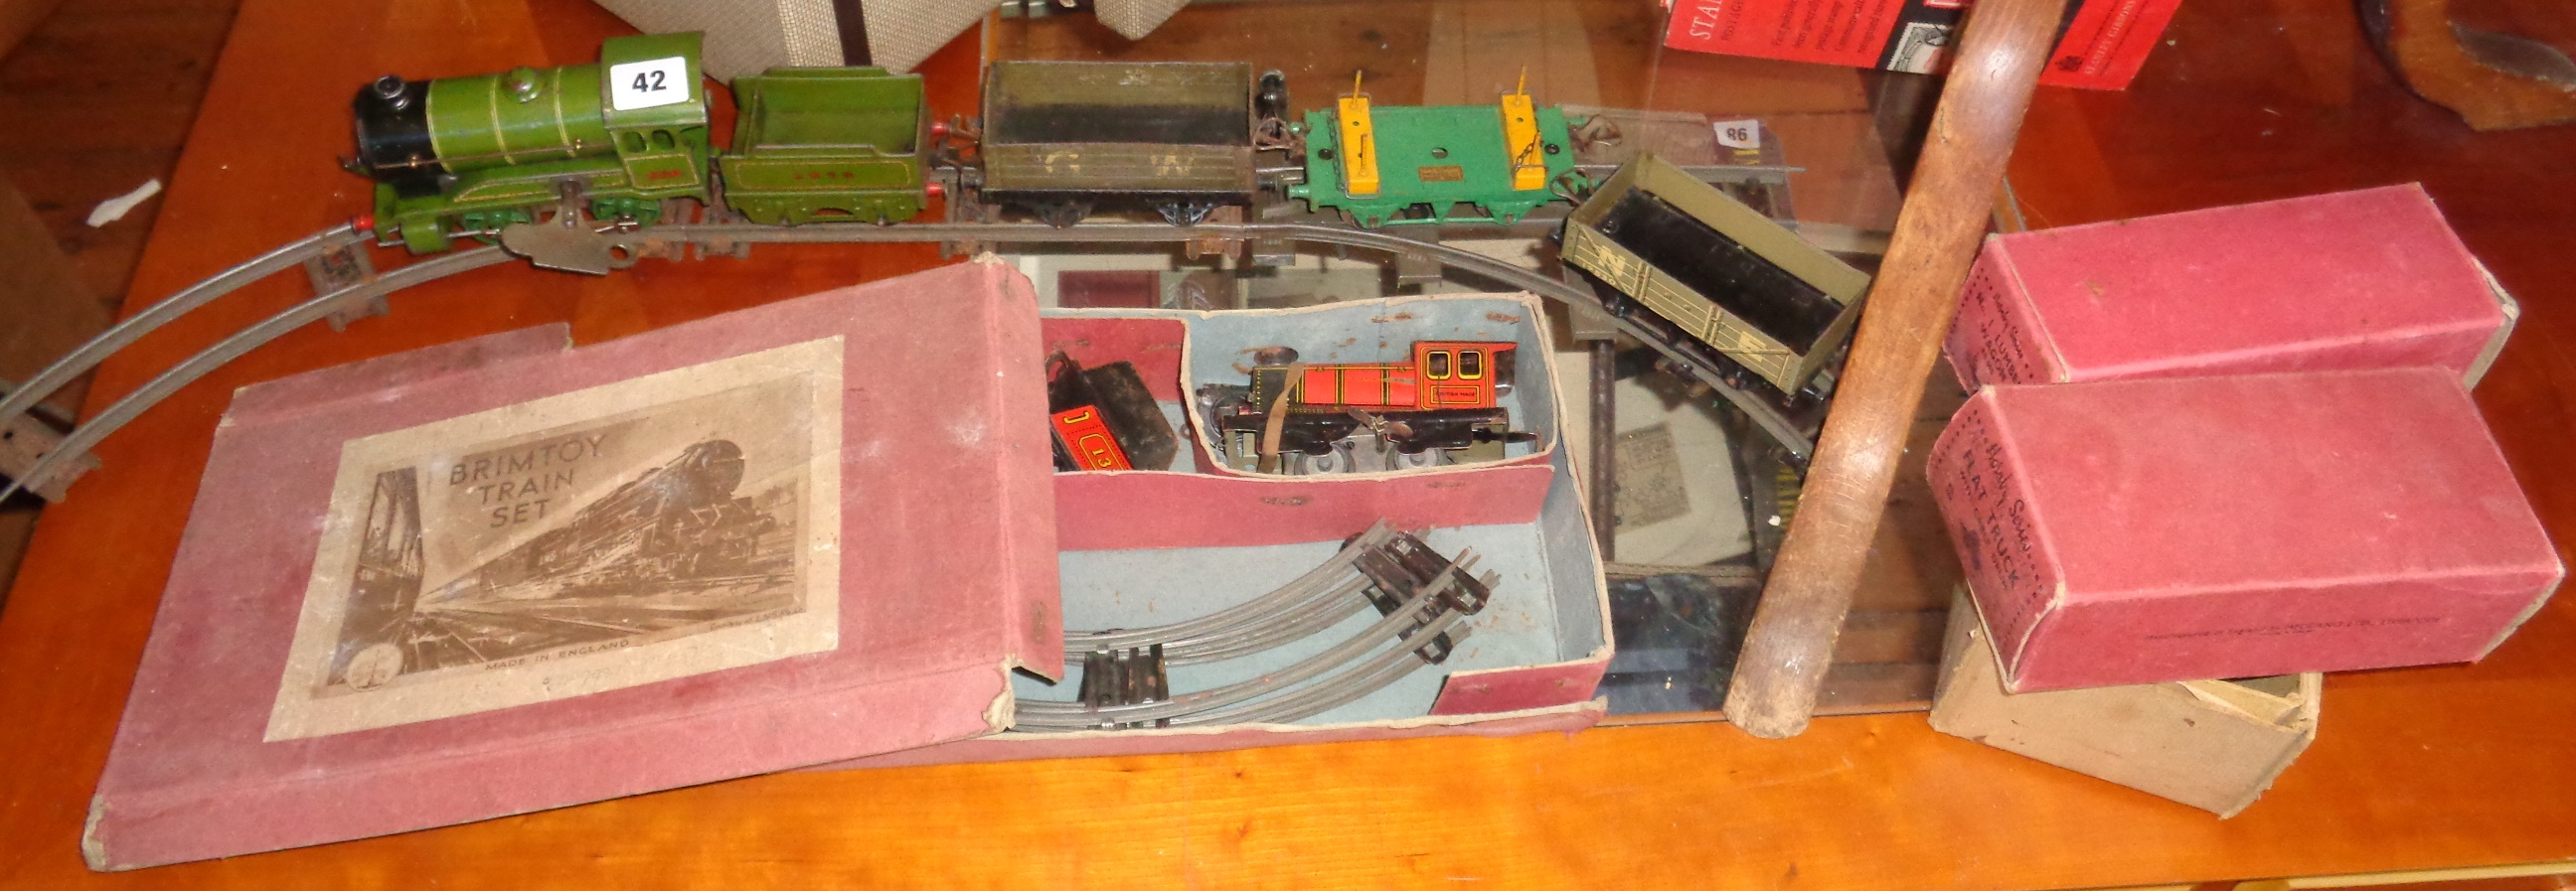 Lot 42 - Hornby 0 gauge L.N.E.R locomotive and goods wagons (3), two boxed, and a Brimtoy Tinplate Train